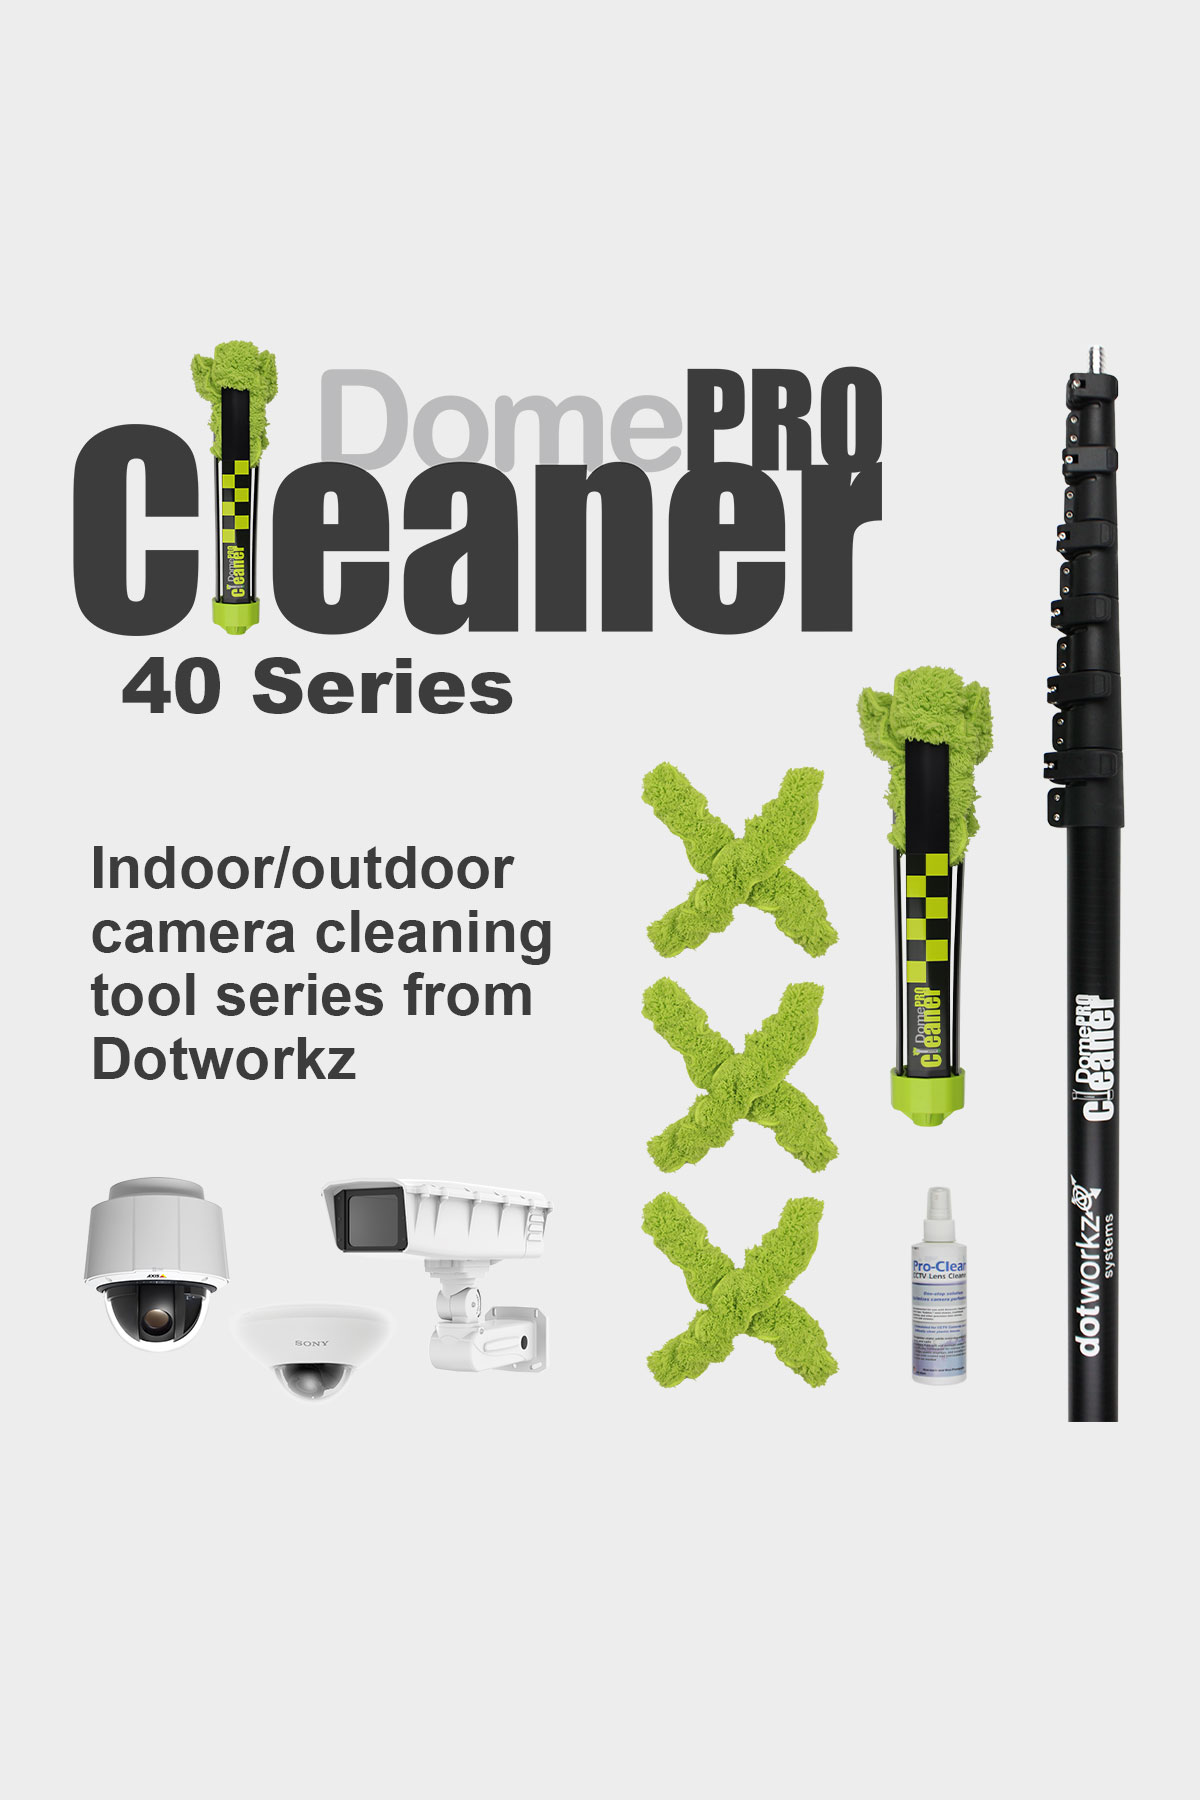 DomeCleanerPRO 40 Series Indoor/Outdoor Lens Cleaning Solution